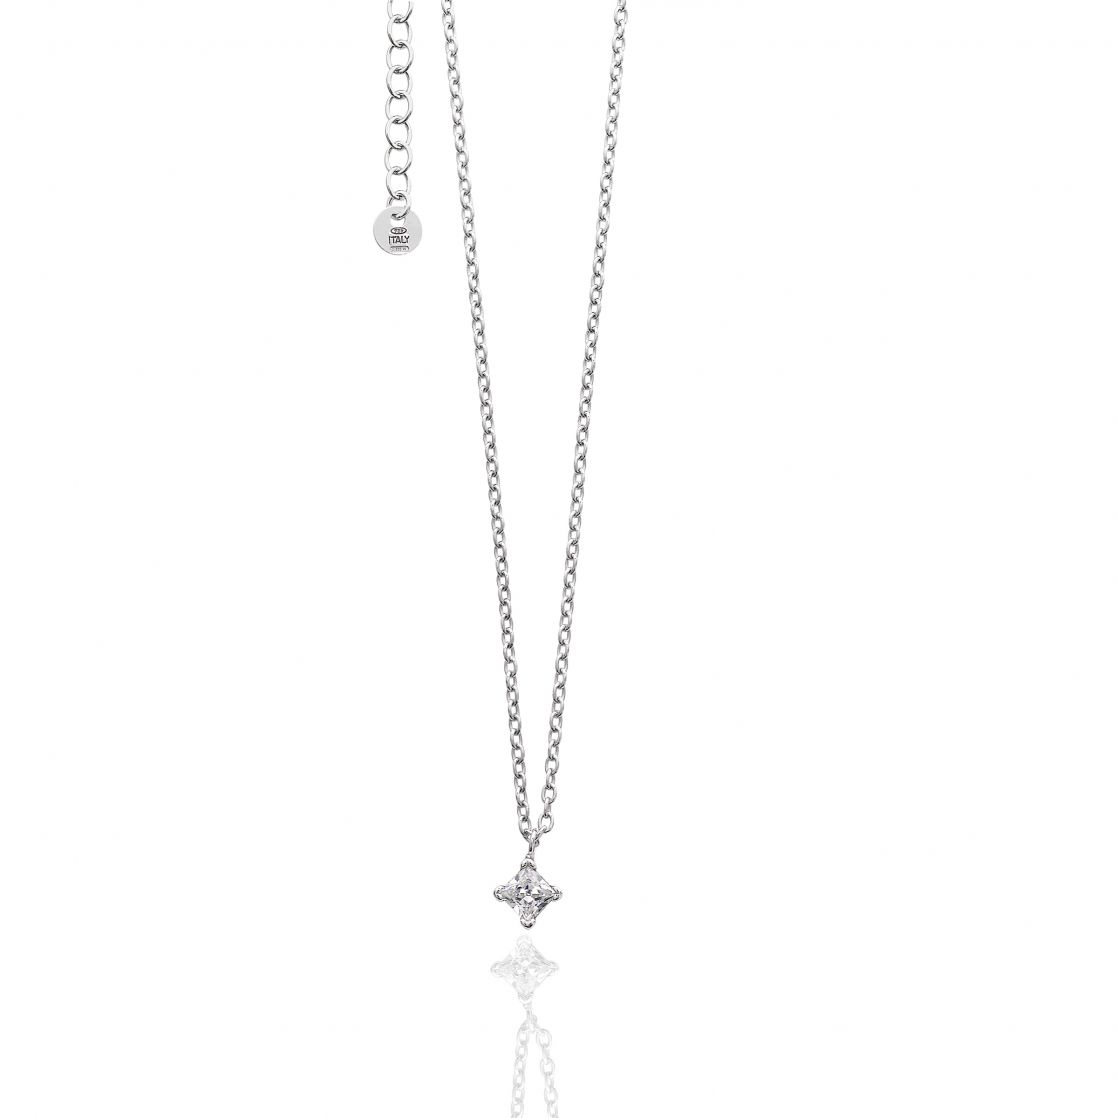 NECKLACE WITH CUBIC ZIRCONIA PENDANT